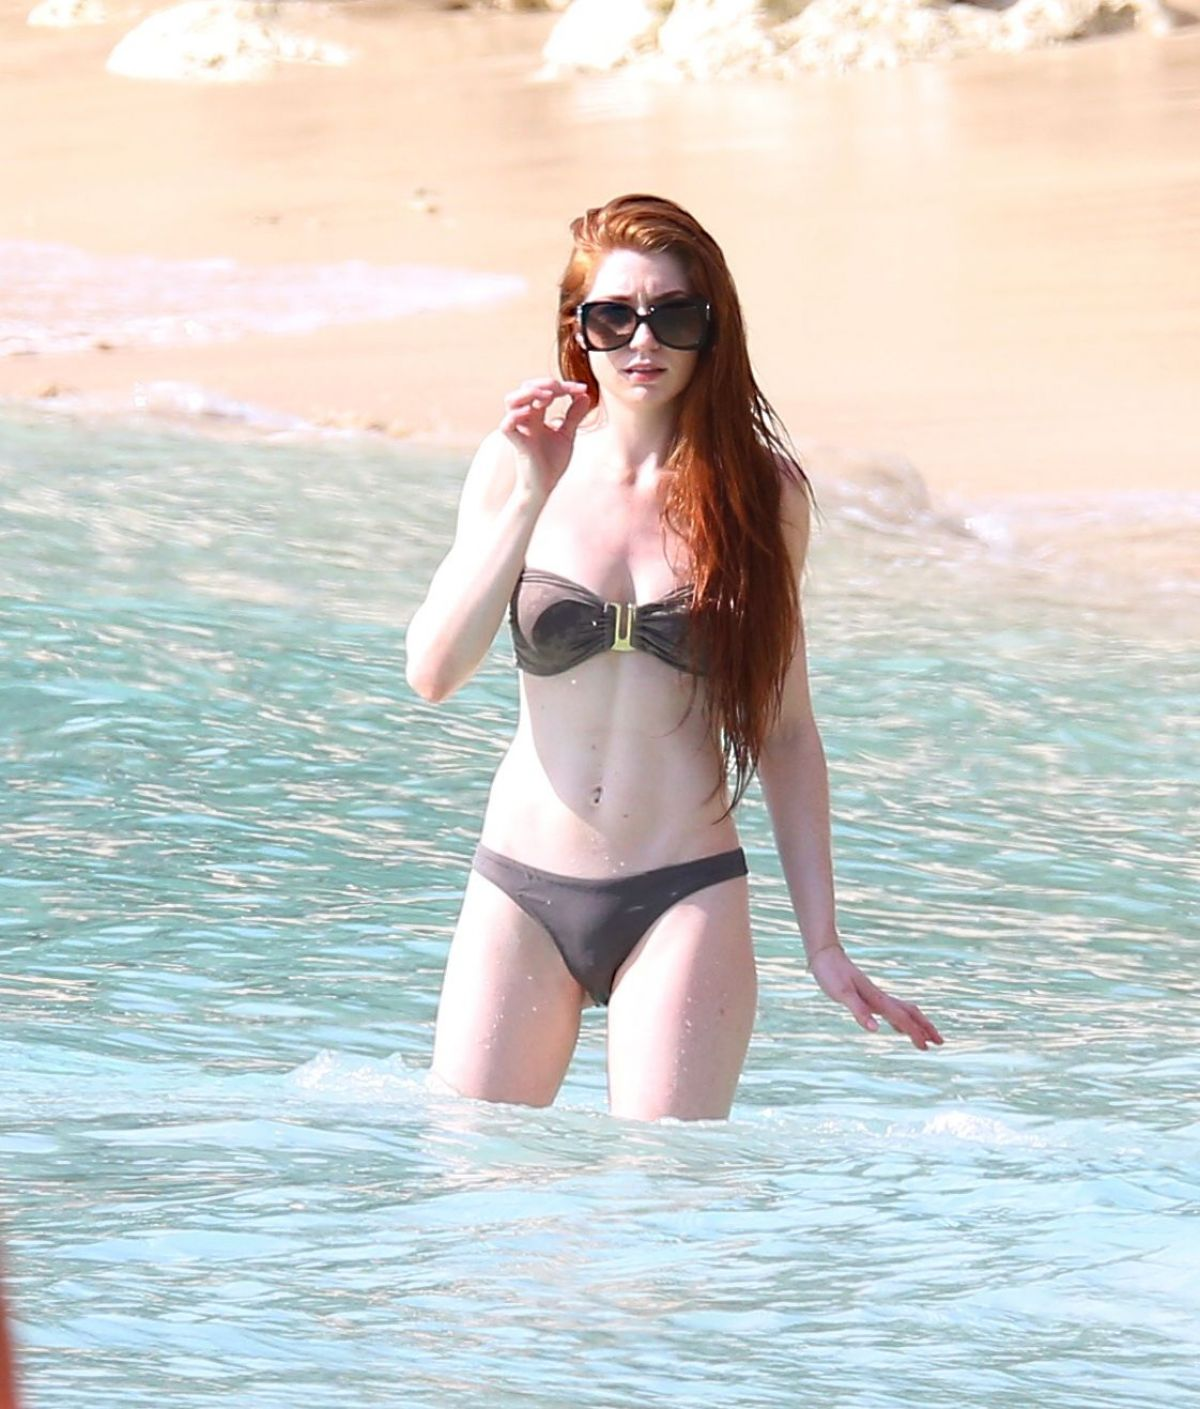 Nicola Roberts Nakked Shower Silhouette For Instagram